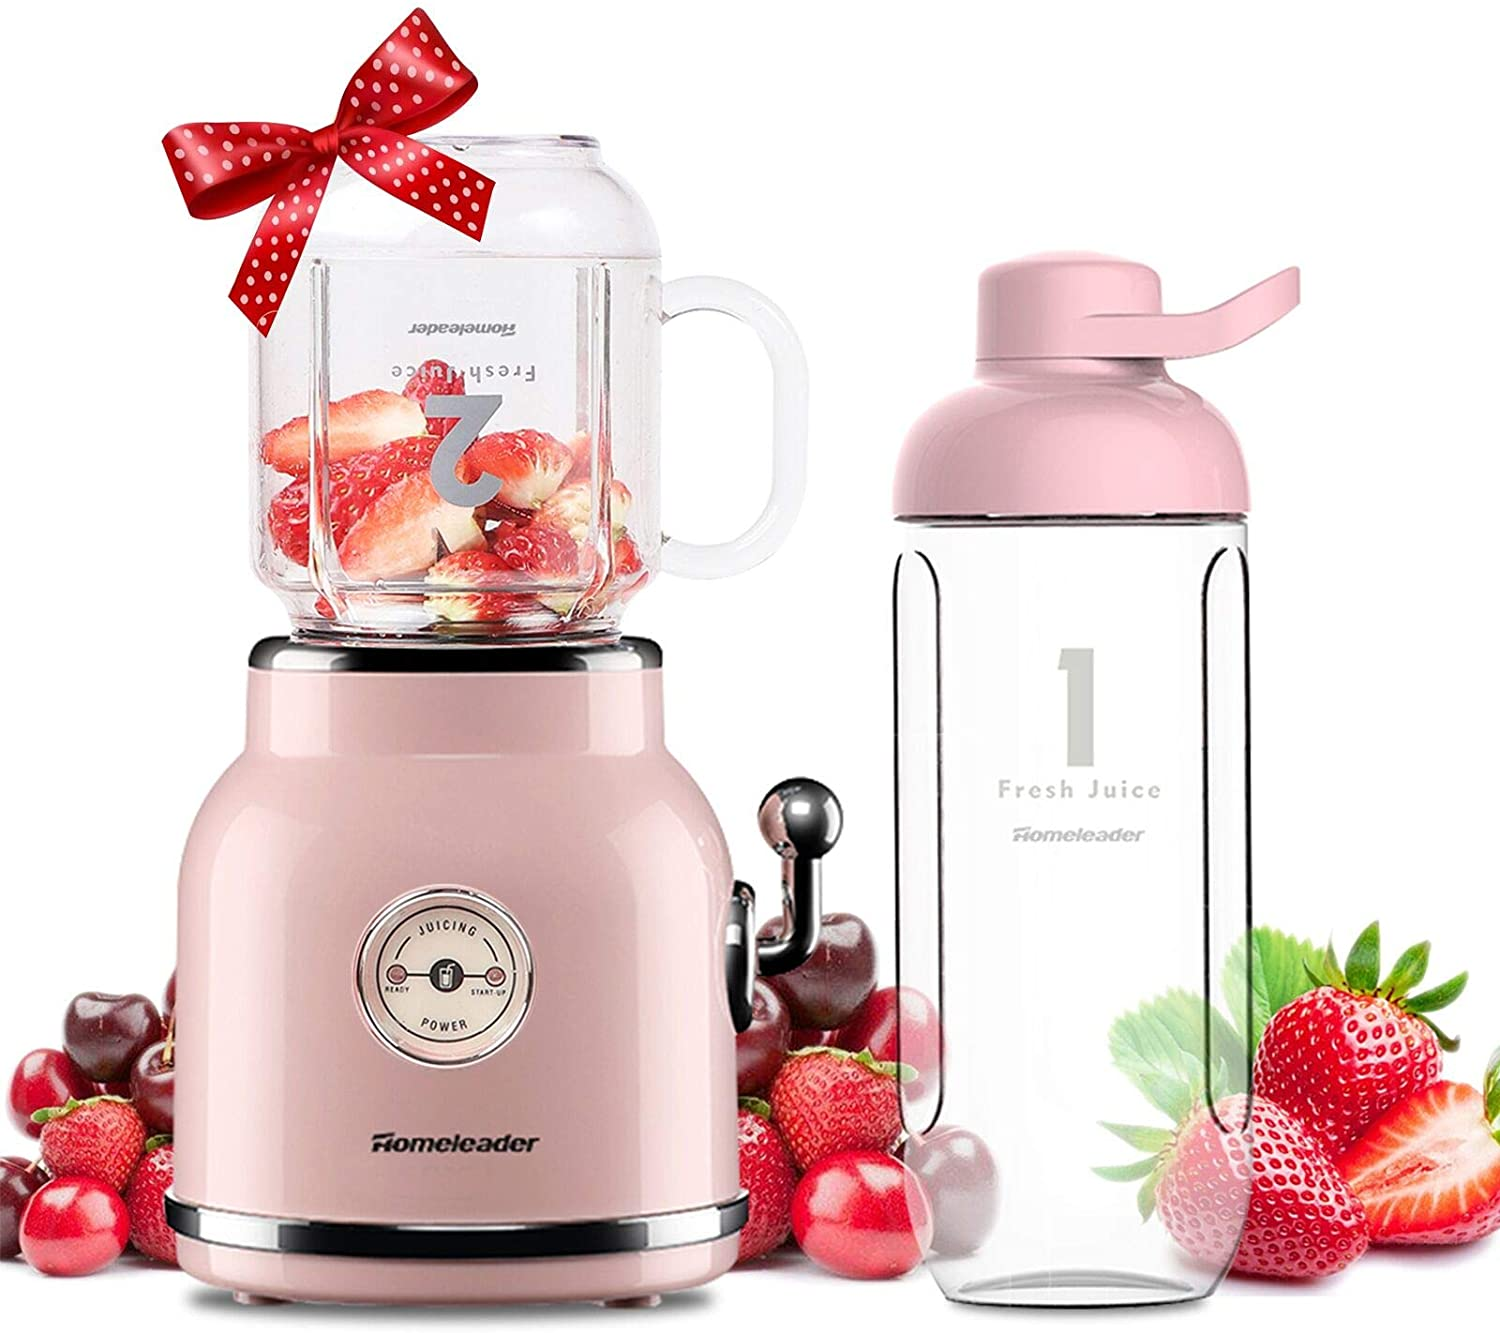 Smoothie Blender, Homeleader Personal Blender for Shakes and Smoothies, Portable Blender with 6 Sharp Blades, 21oz Travel Cup and Lids, Pink